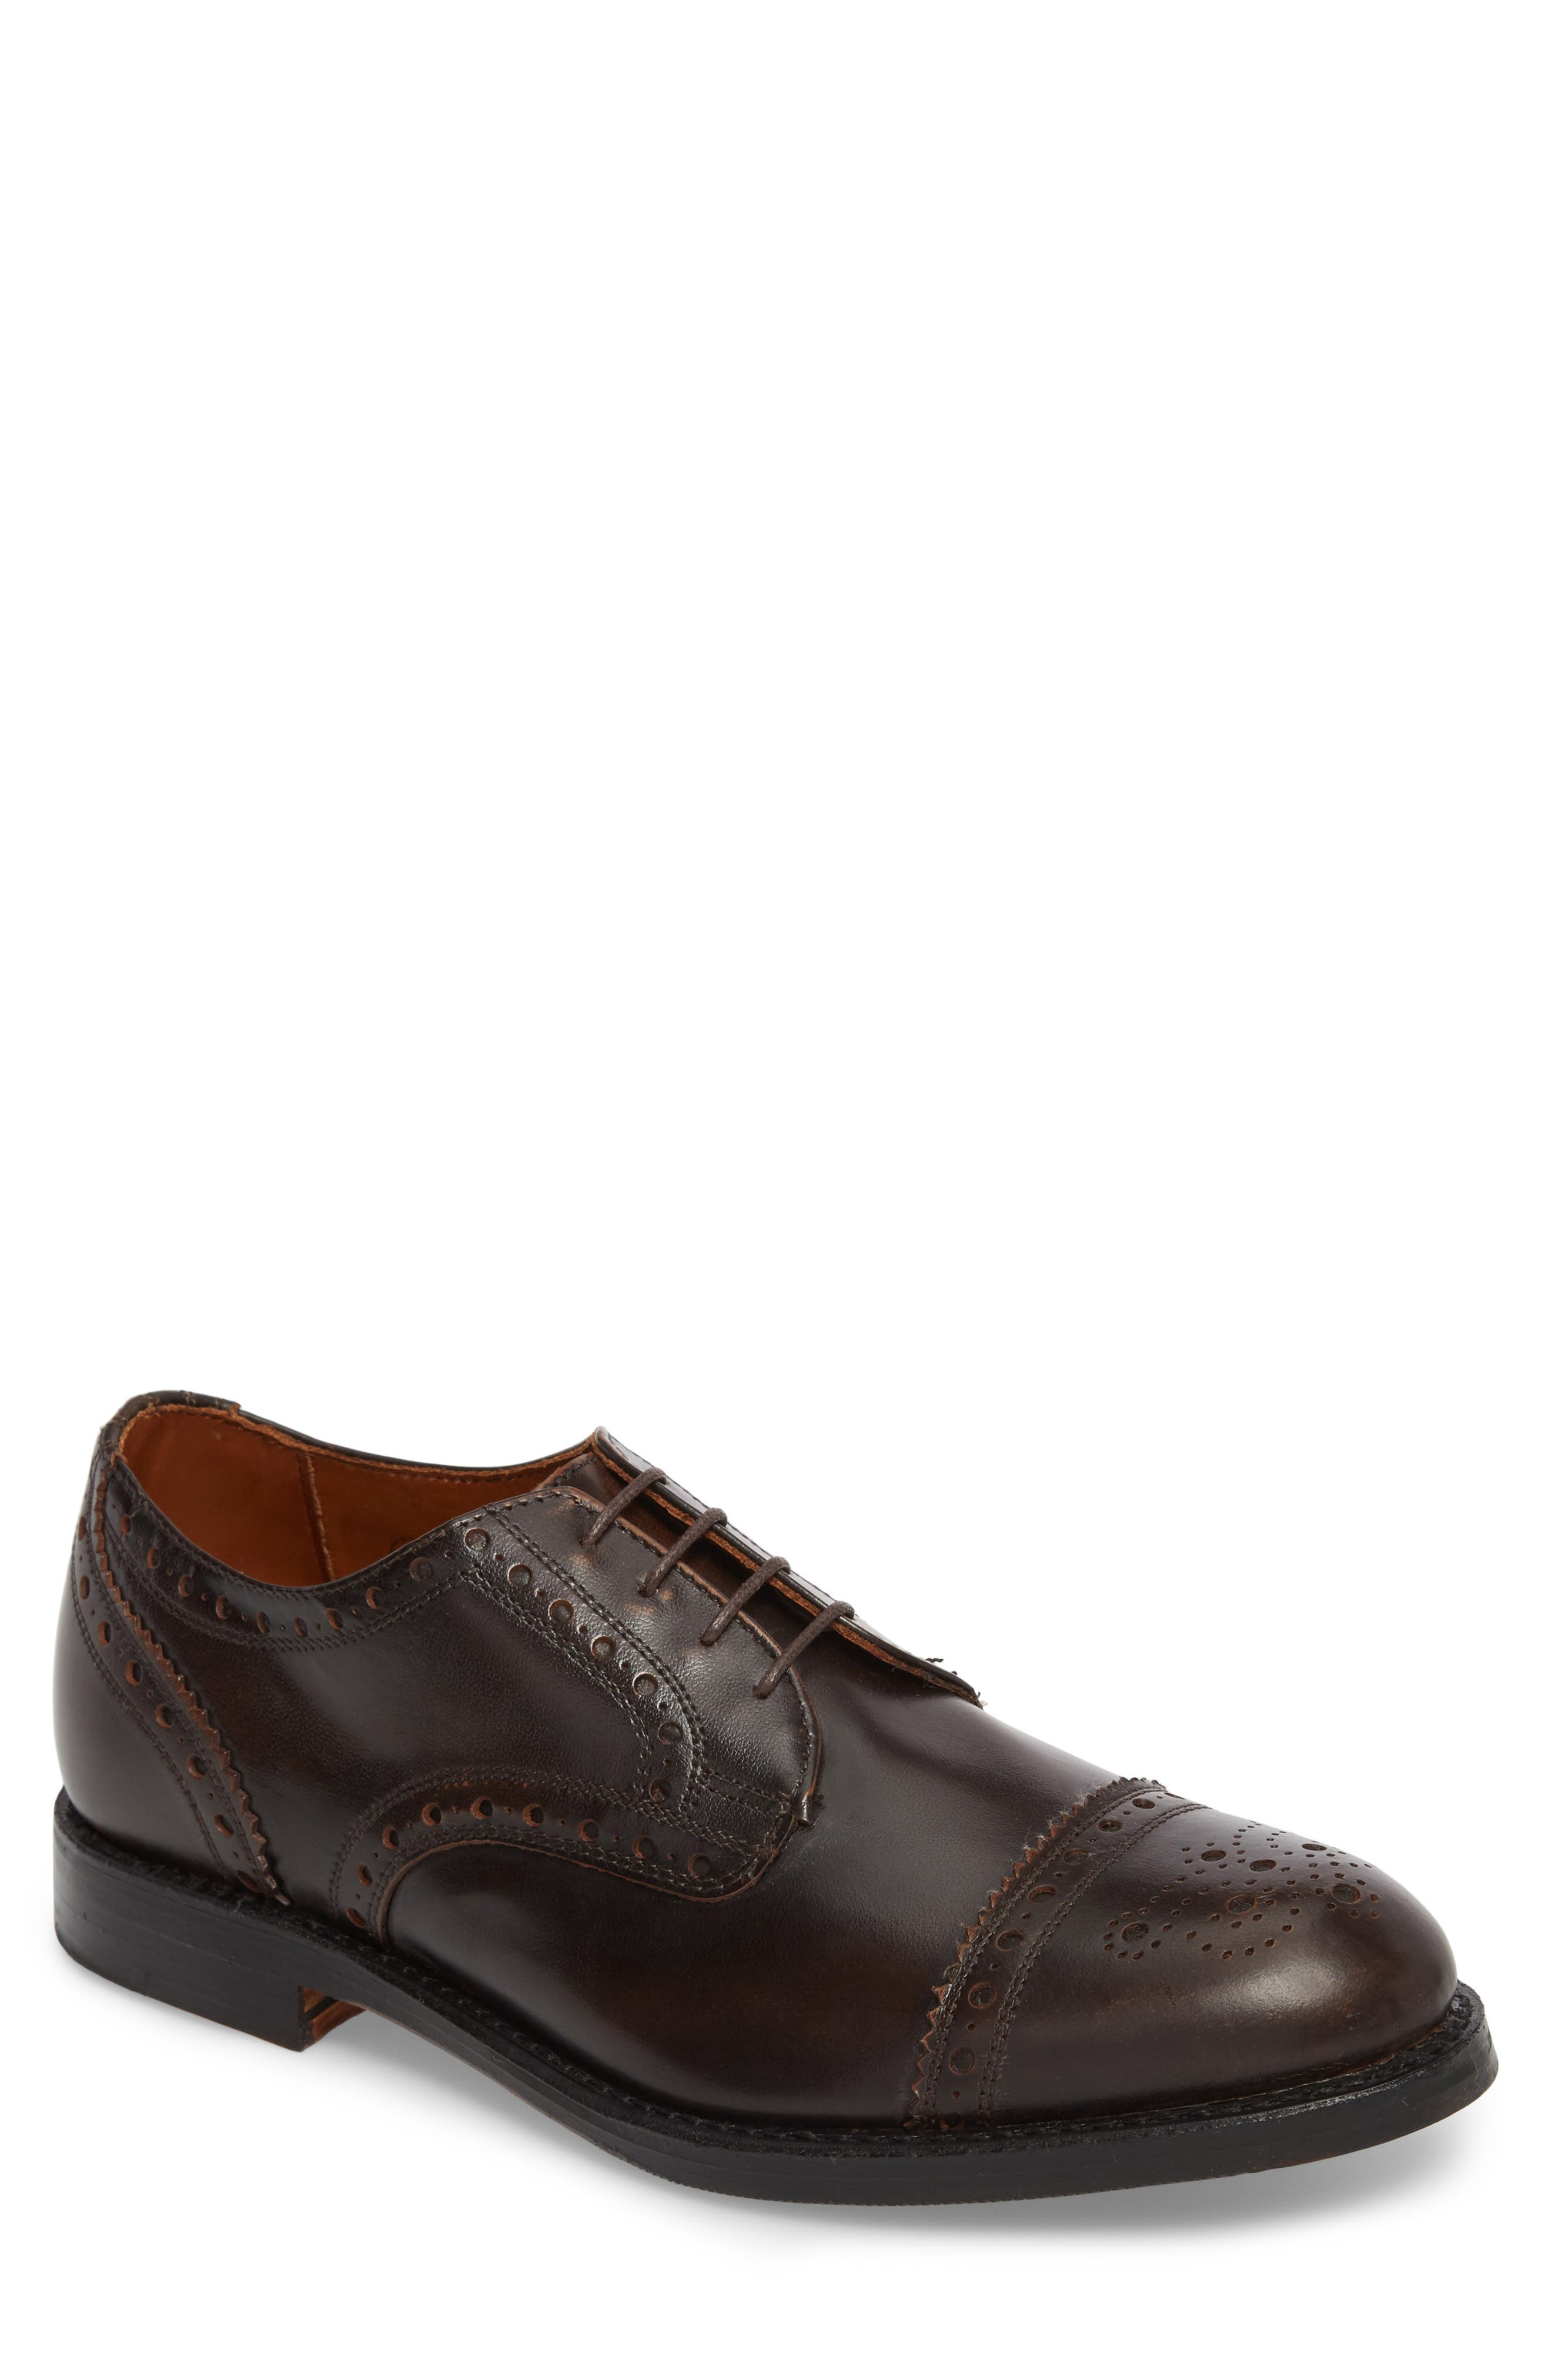 Whitney Medallion Toe Derby,                             Main thumbnail 1, color,                             Brown Leather